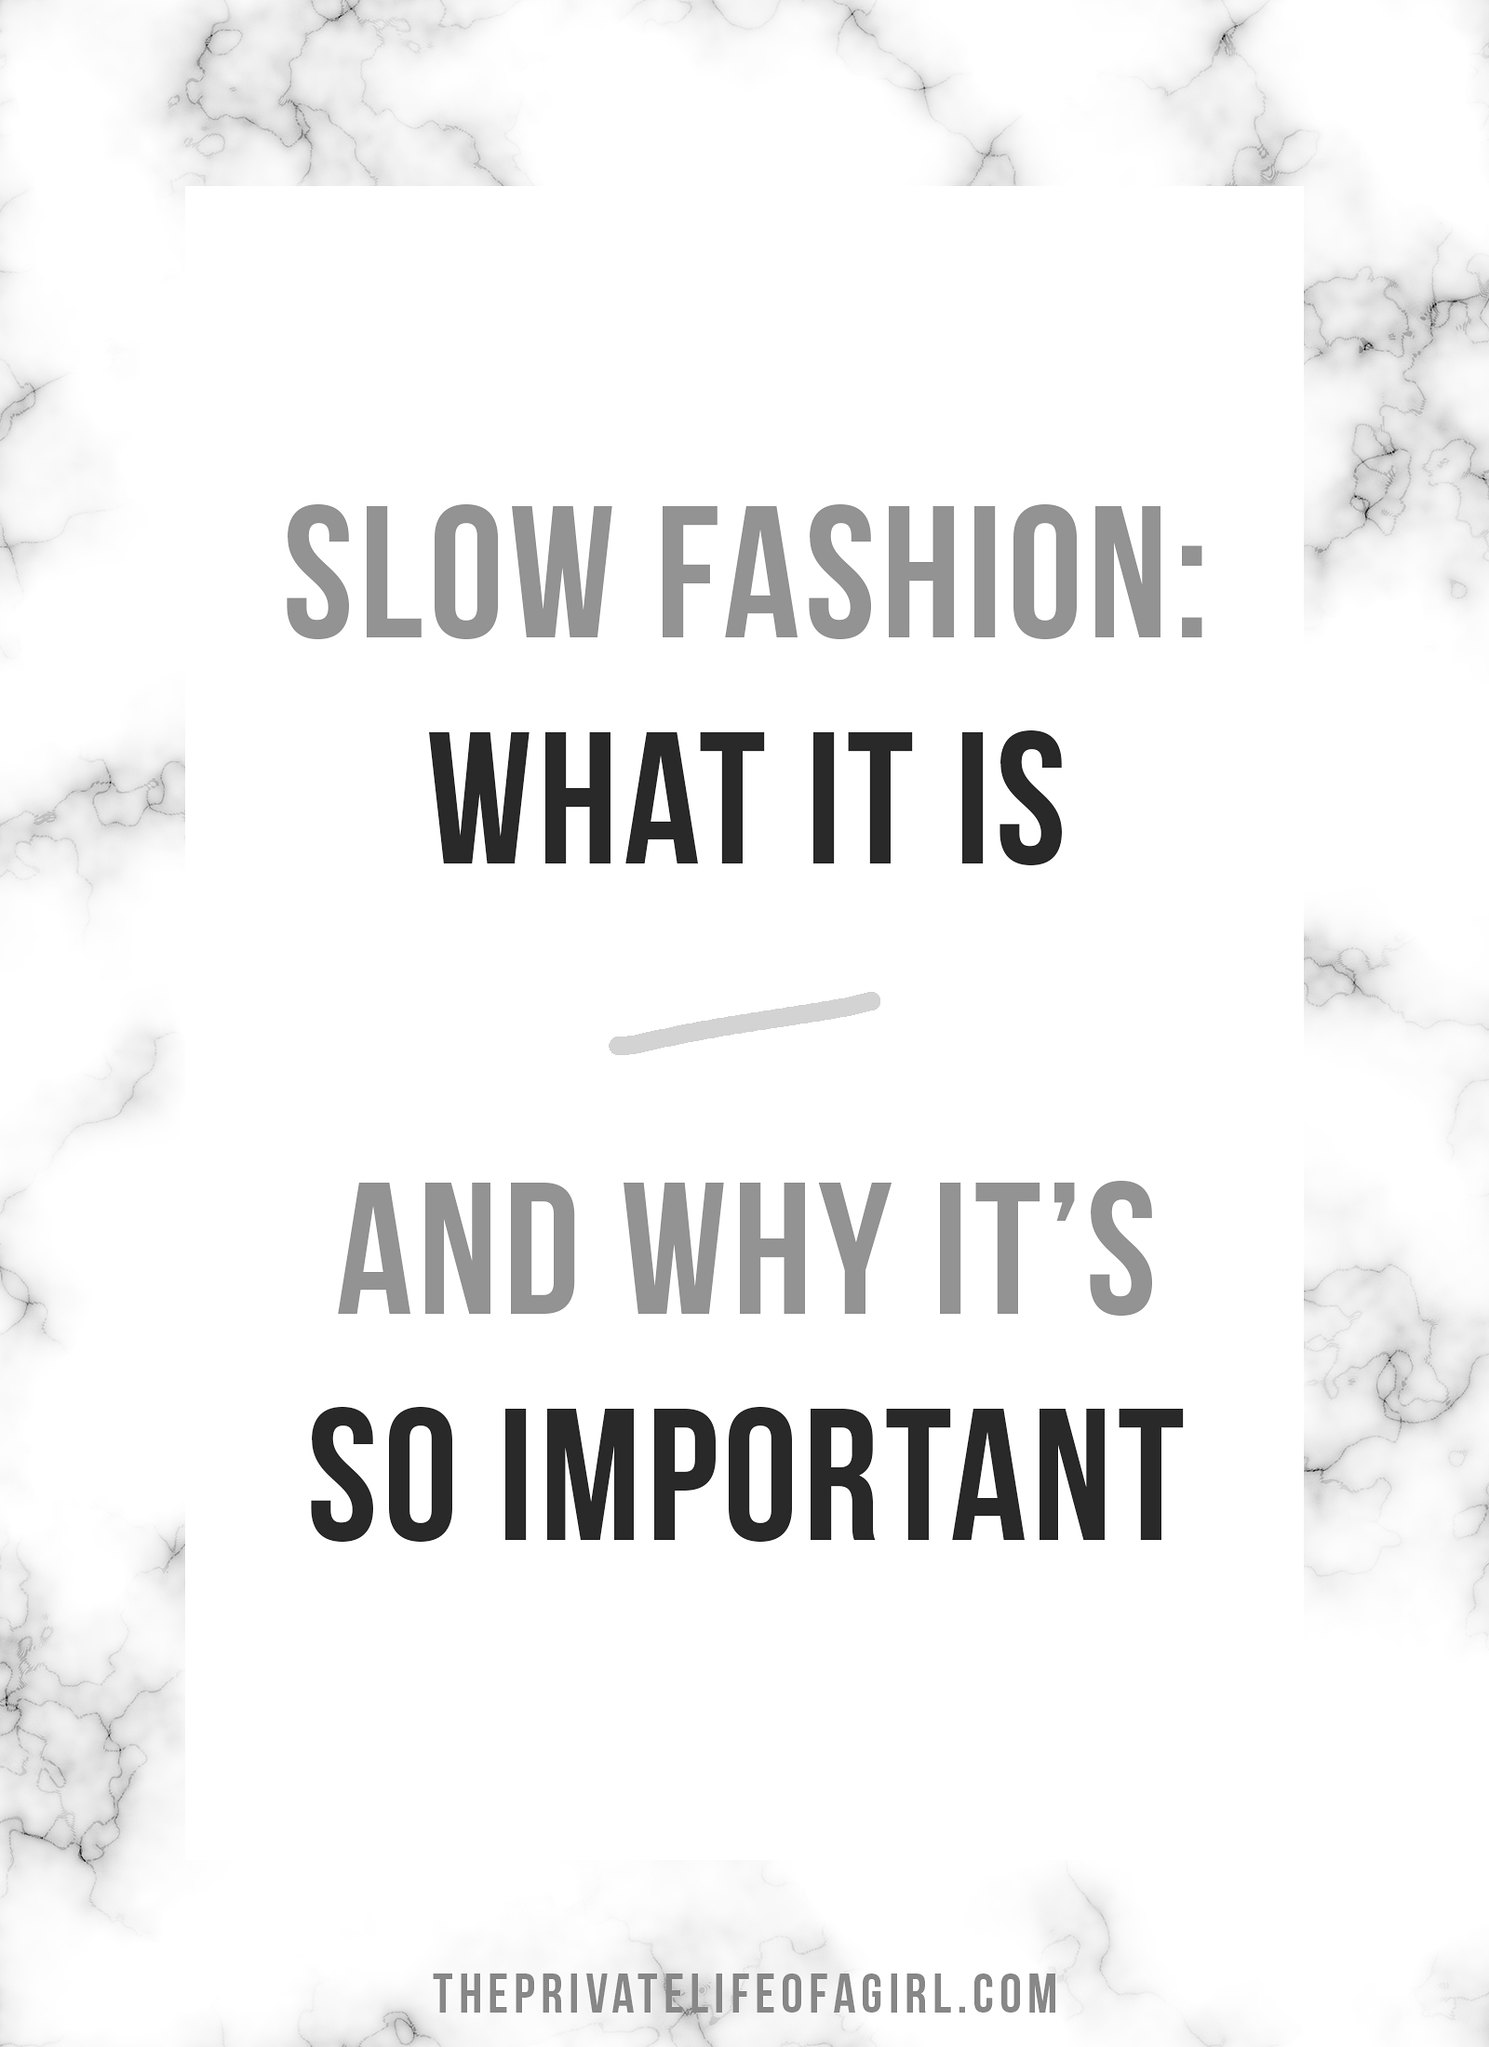 Slow Fashion: What It Is and Why It's So Important